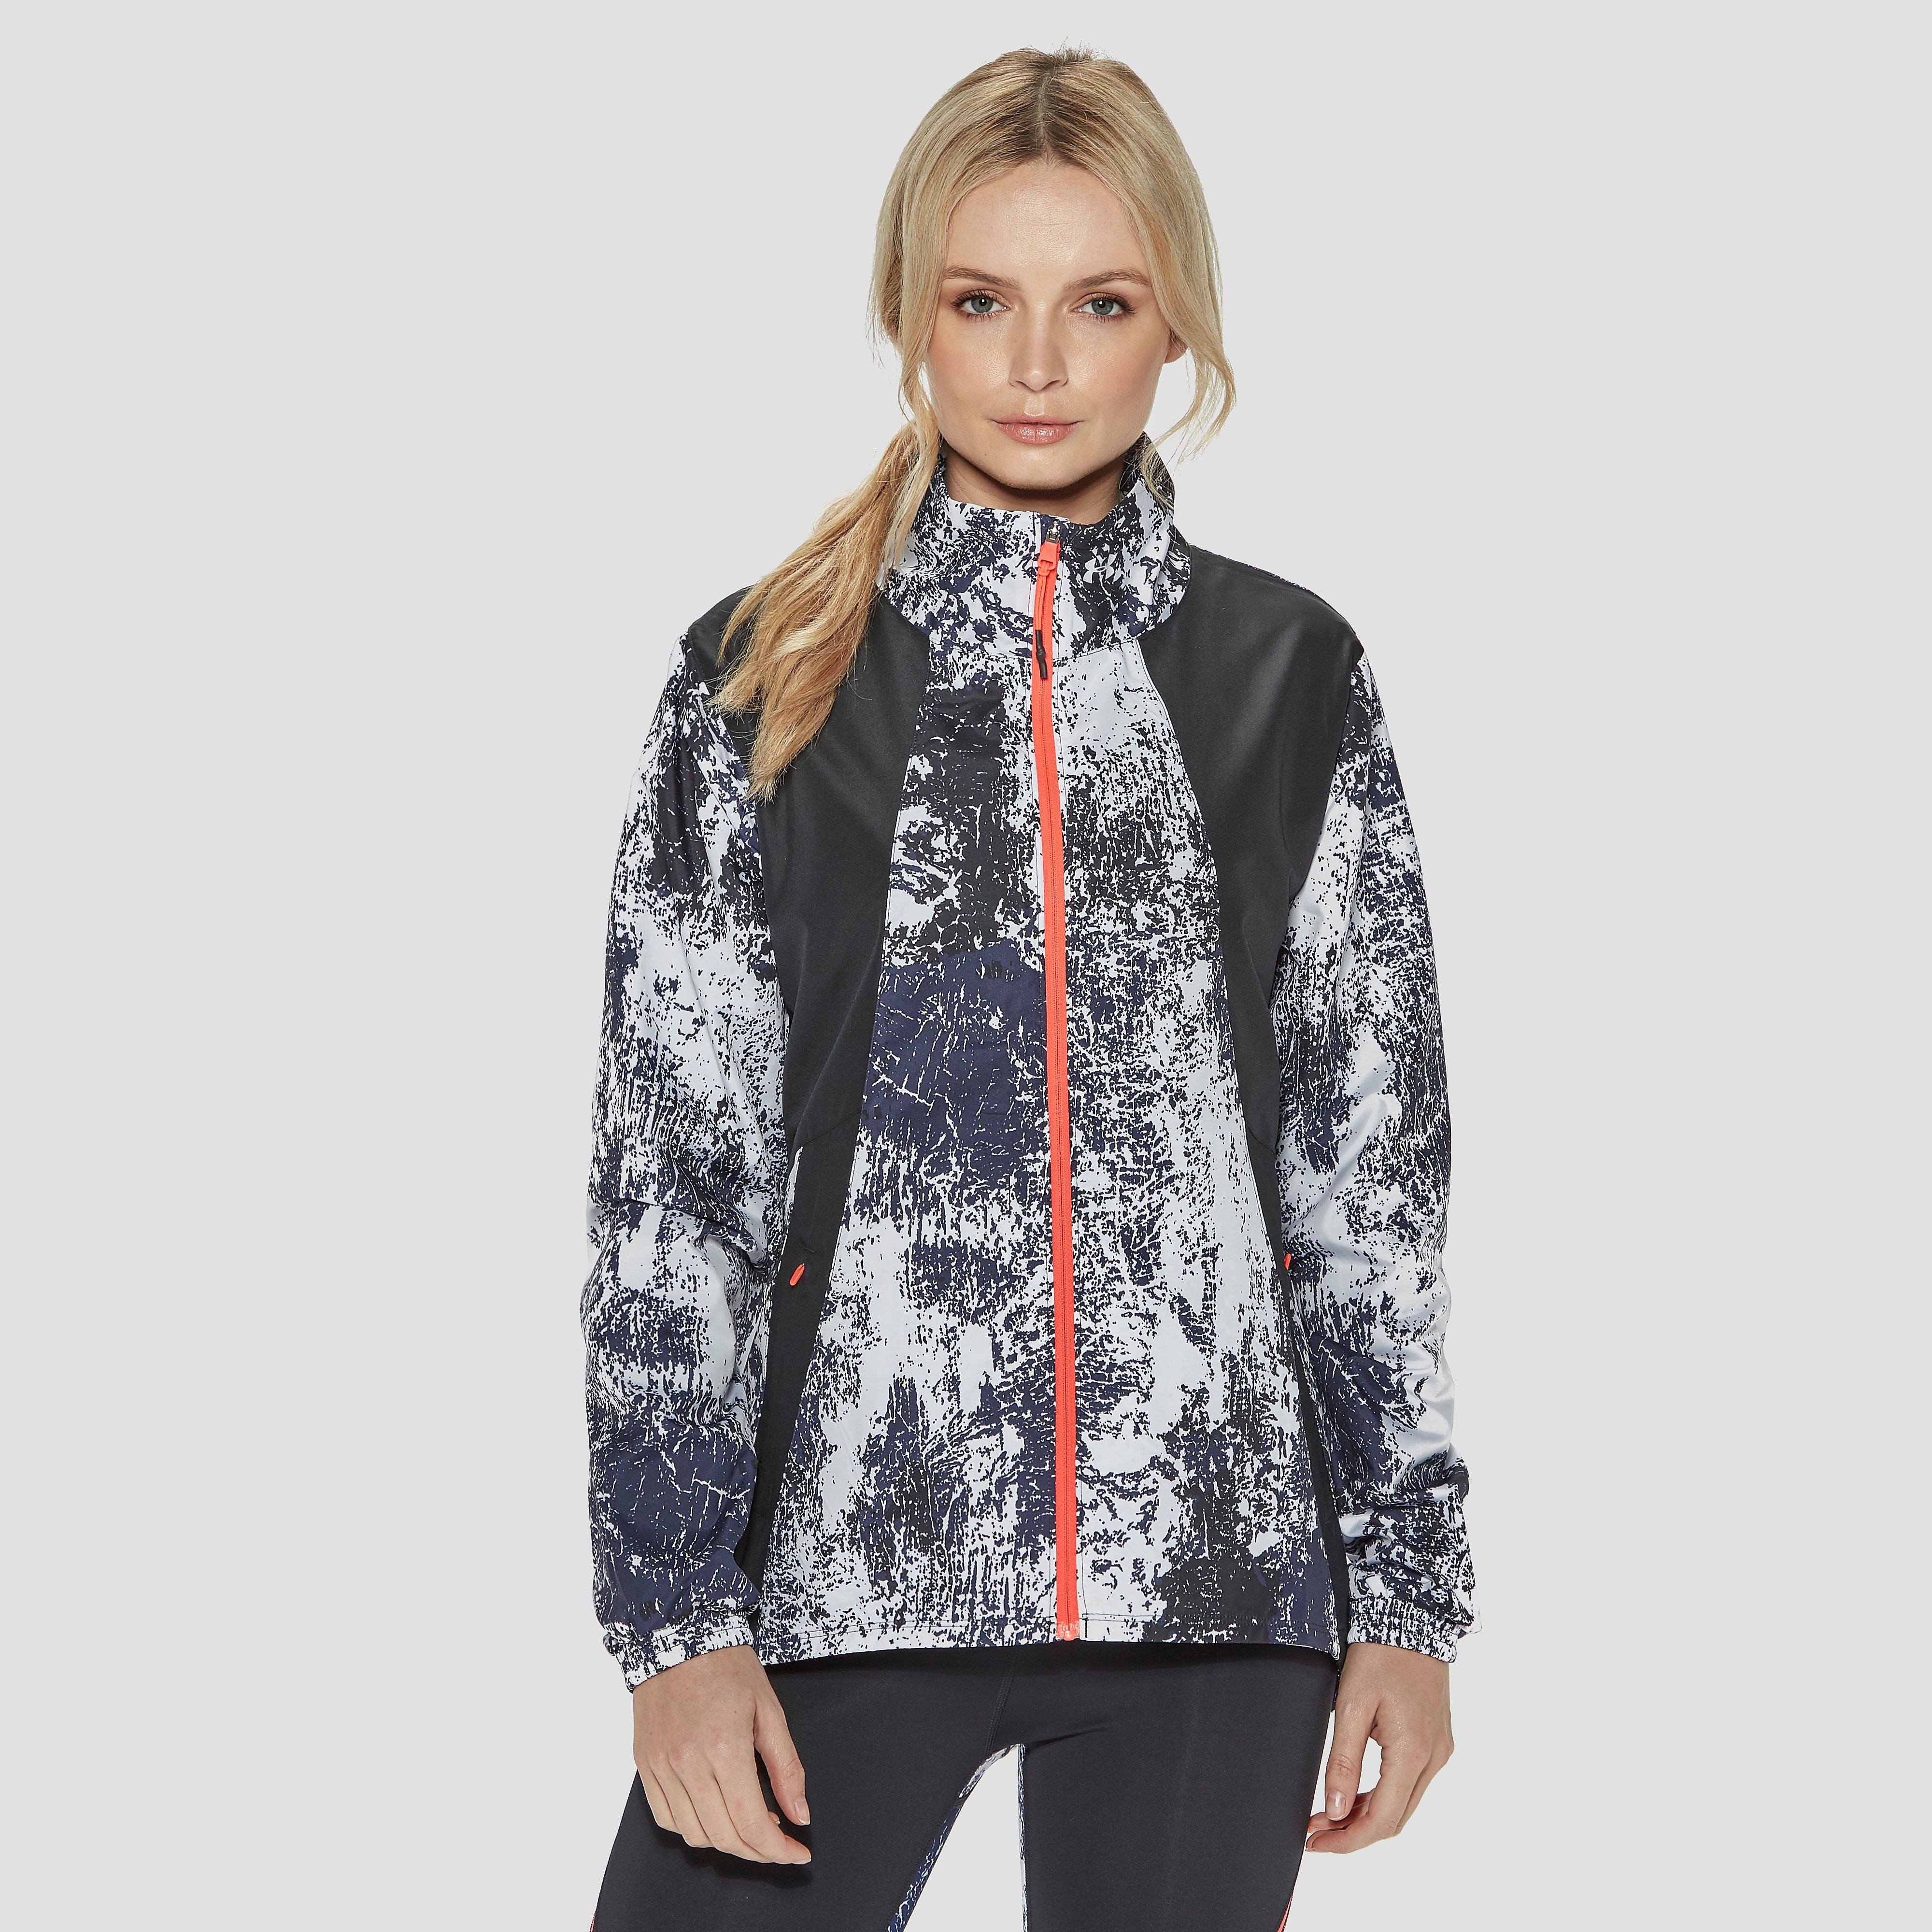 Under Armour Women's Winter Running Jacket